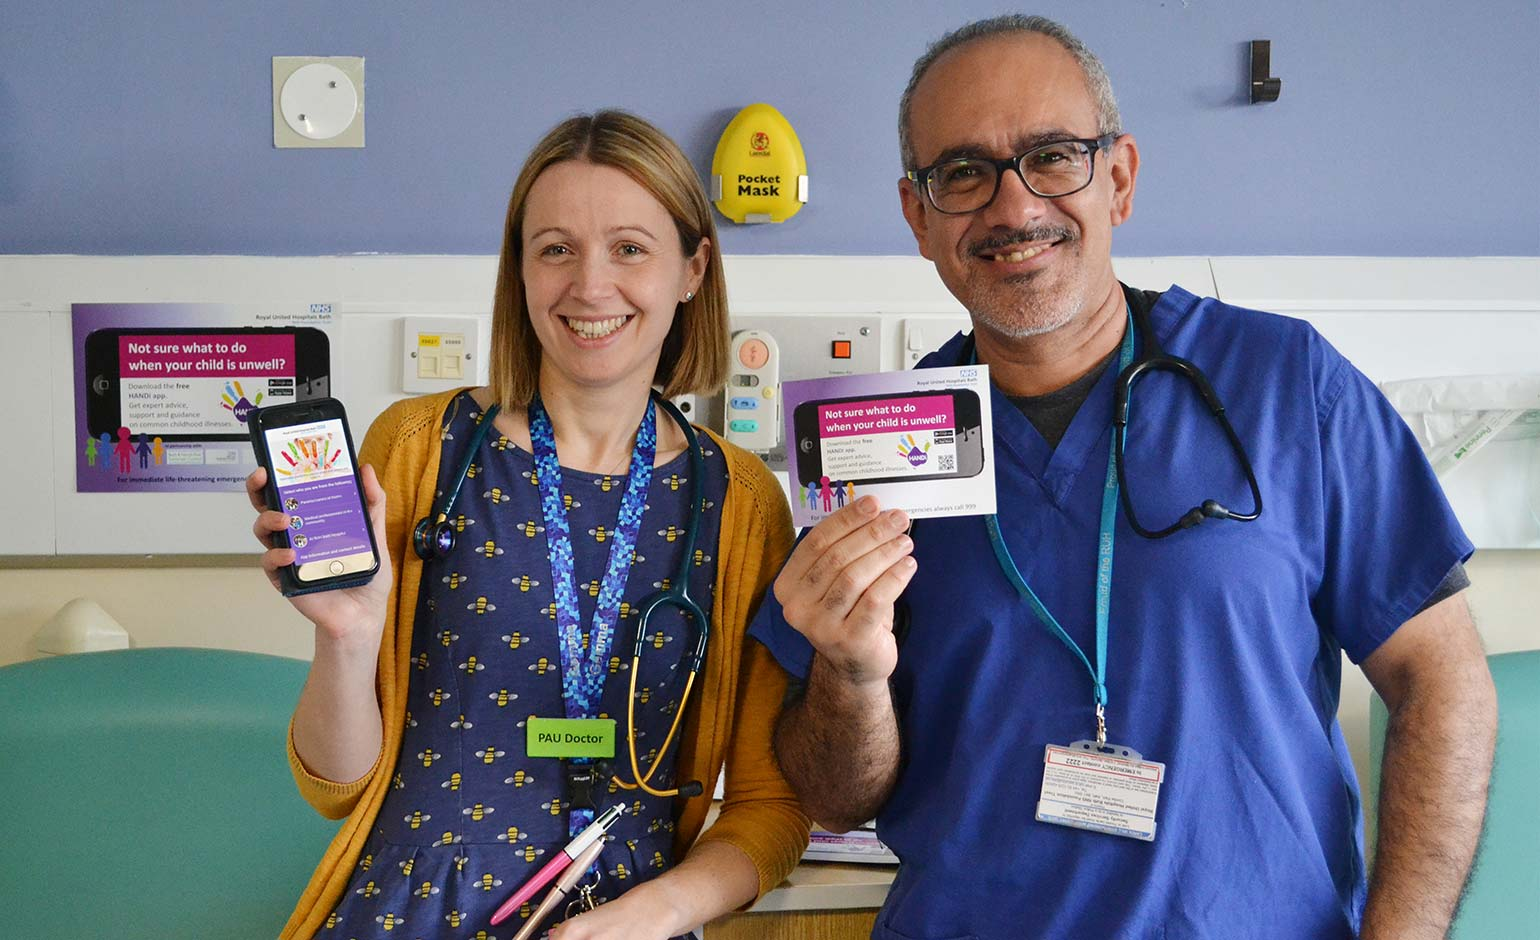 RUH paediatricians urge Bath parents to download free medical advice app